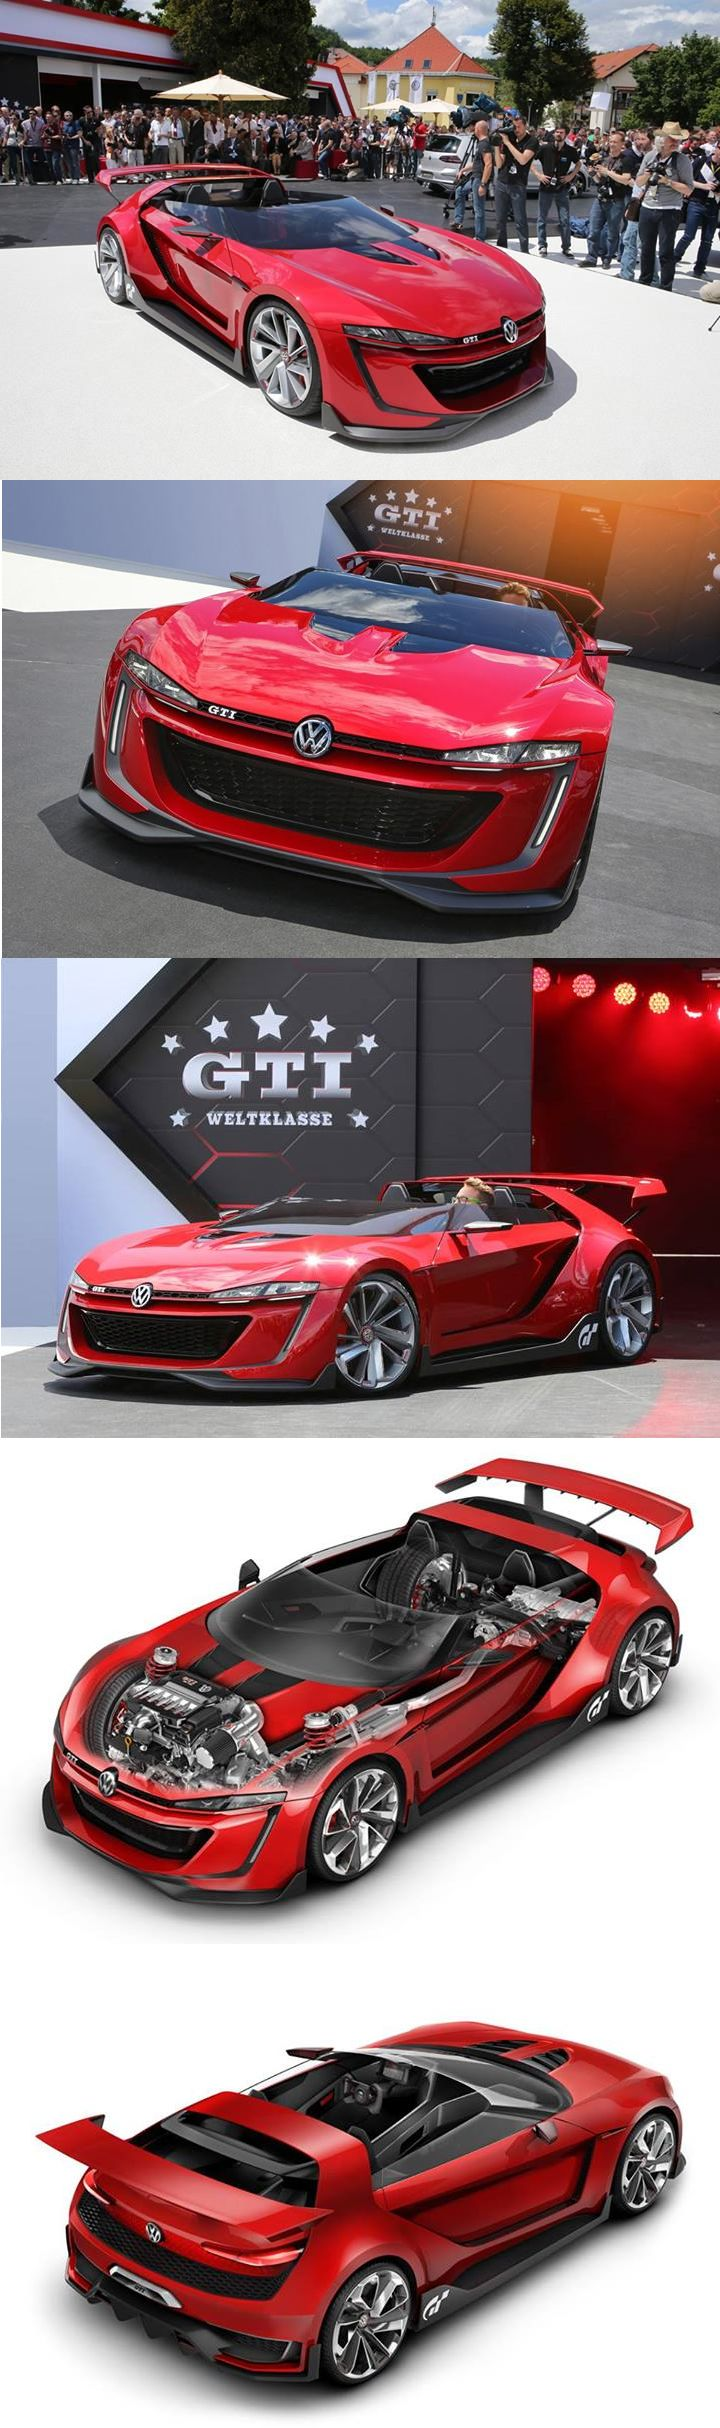 "At Wörthersee, the attraction of the Volkswagen GTI stand is called Roadster. This concept drawing particularly radical is powered by 3.0 V6 biturbo 503 bhp and 57.1 kgm whose power is transmitted to all four wheels via a DSG.  Compared to the Golf GTI as a basis, the wheelbase is reduced by 137 mm or 2494 mm, and height drops to 1.09 m. Volkswagen announces a weight of 1 420 kg, a 0-100 km / h in 3 ""6 and a Vmax of 309 km / h."